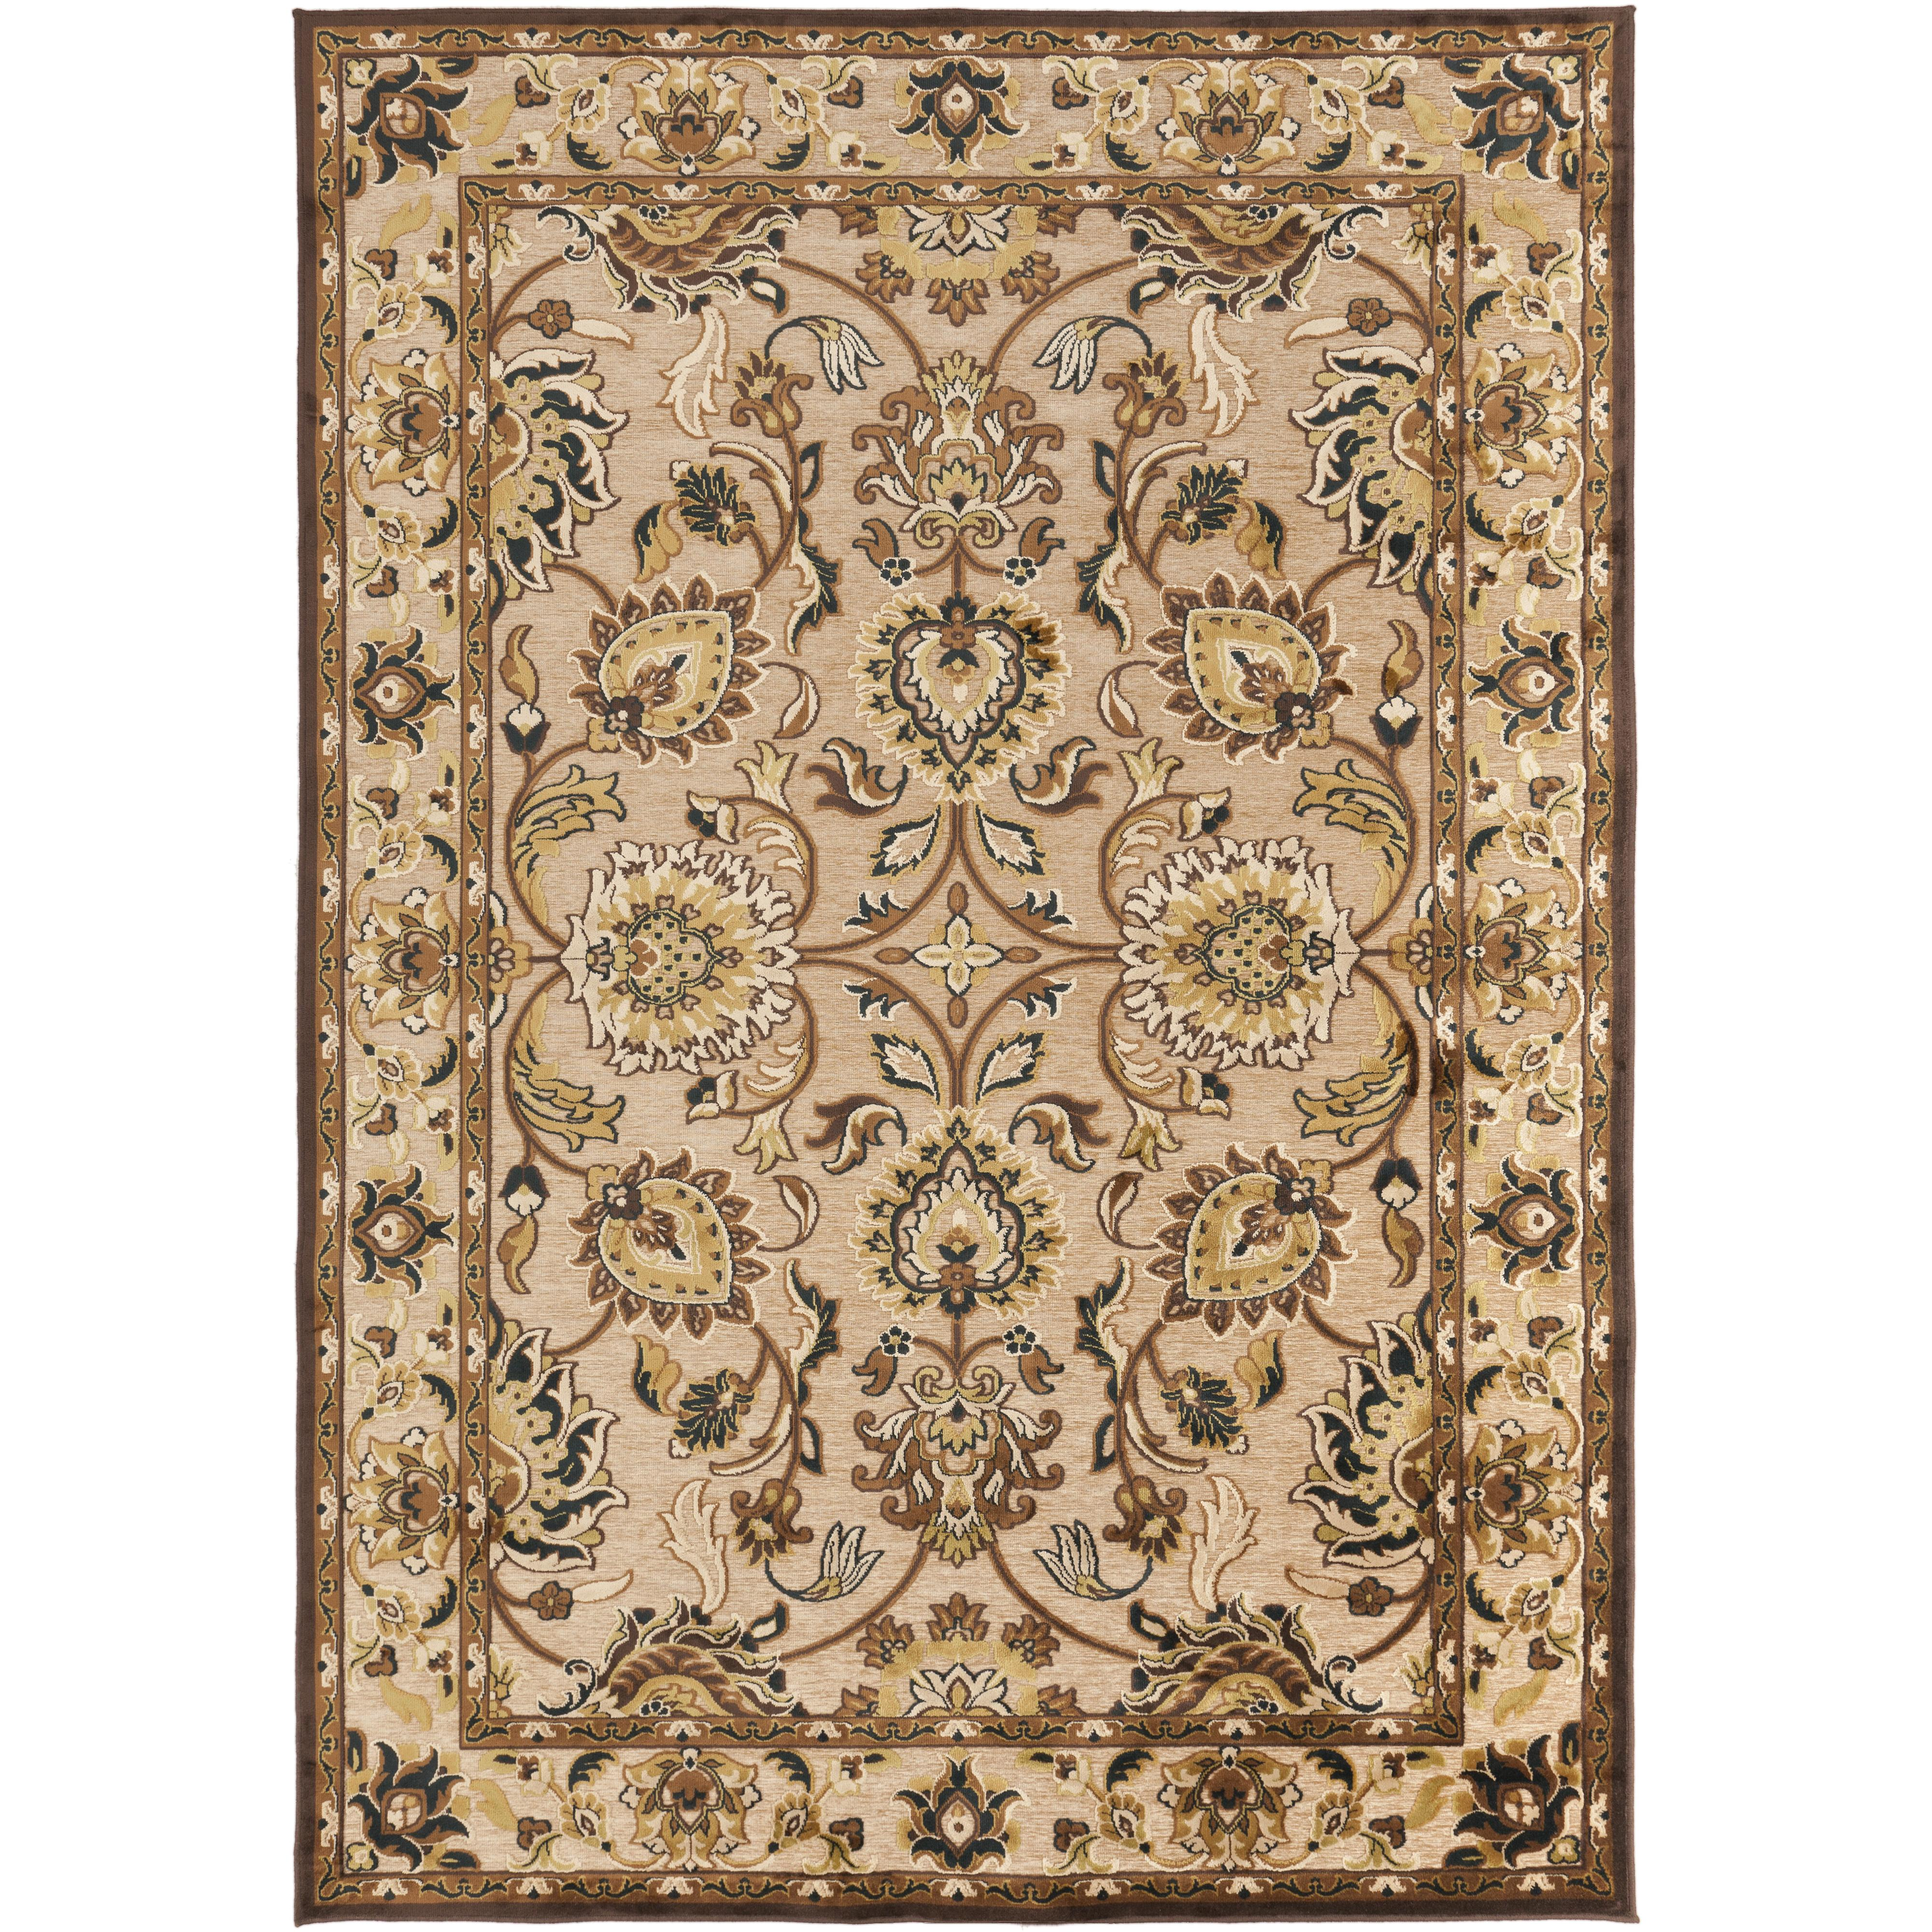 """Oriental Rugs Hagerstown Md: 2'2"""" X 3' By Surya"""